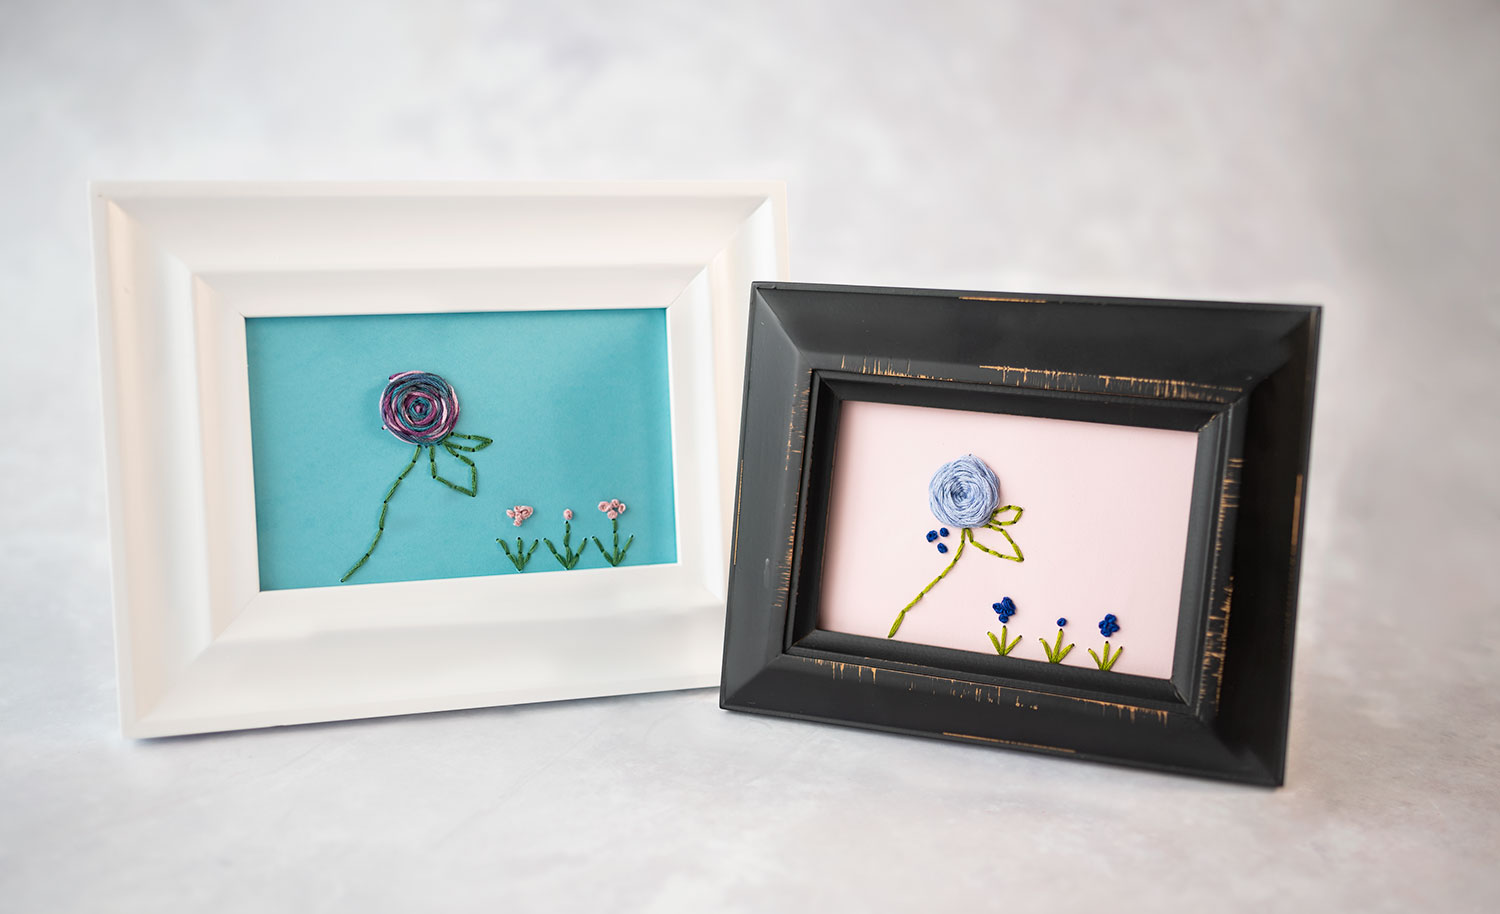 two framed, hand stitched flower designs. One in a white frame and one in a black frame. Both are hand stitched using the included pattern.